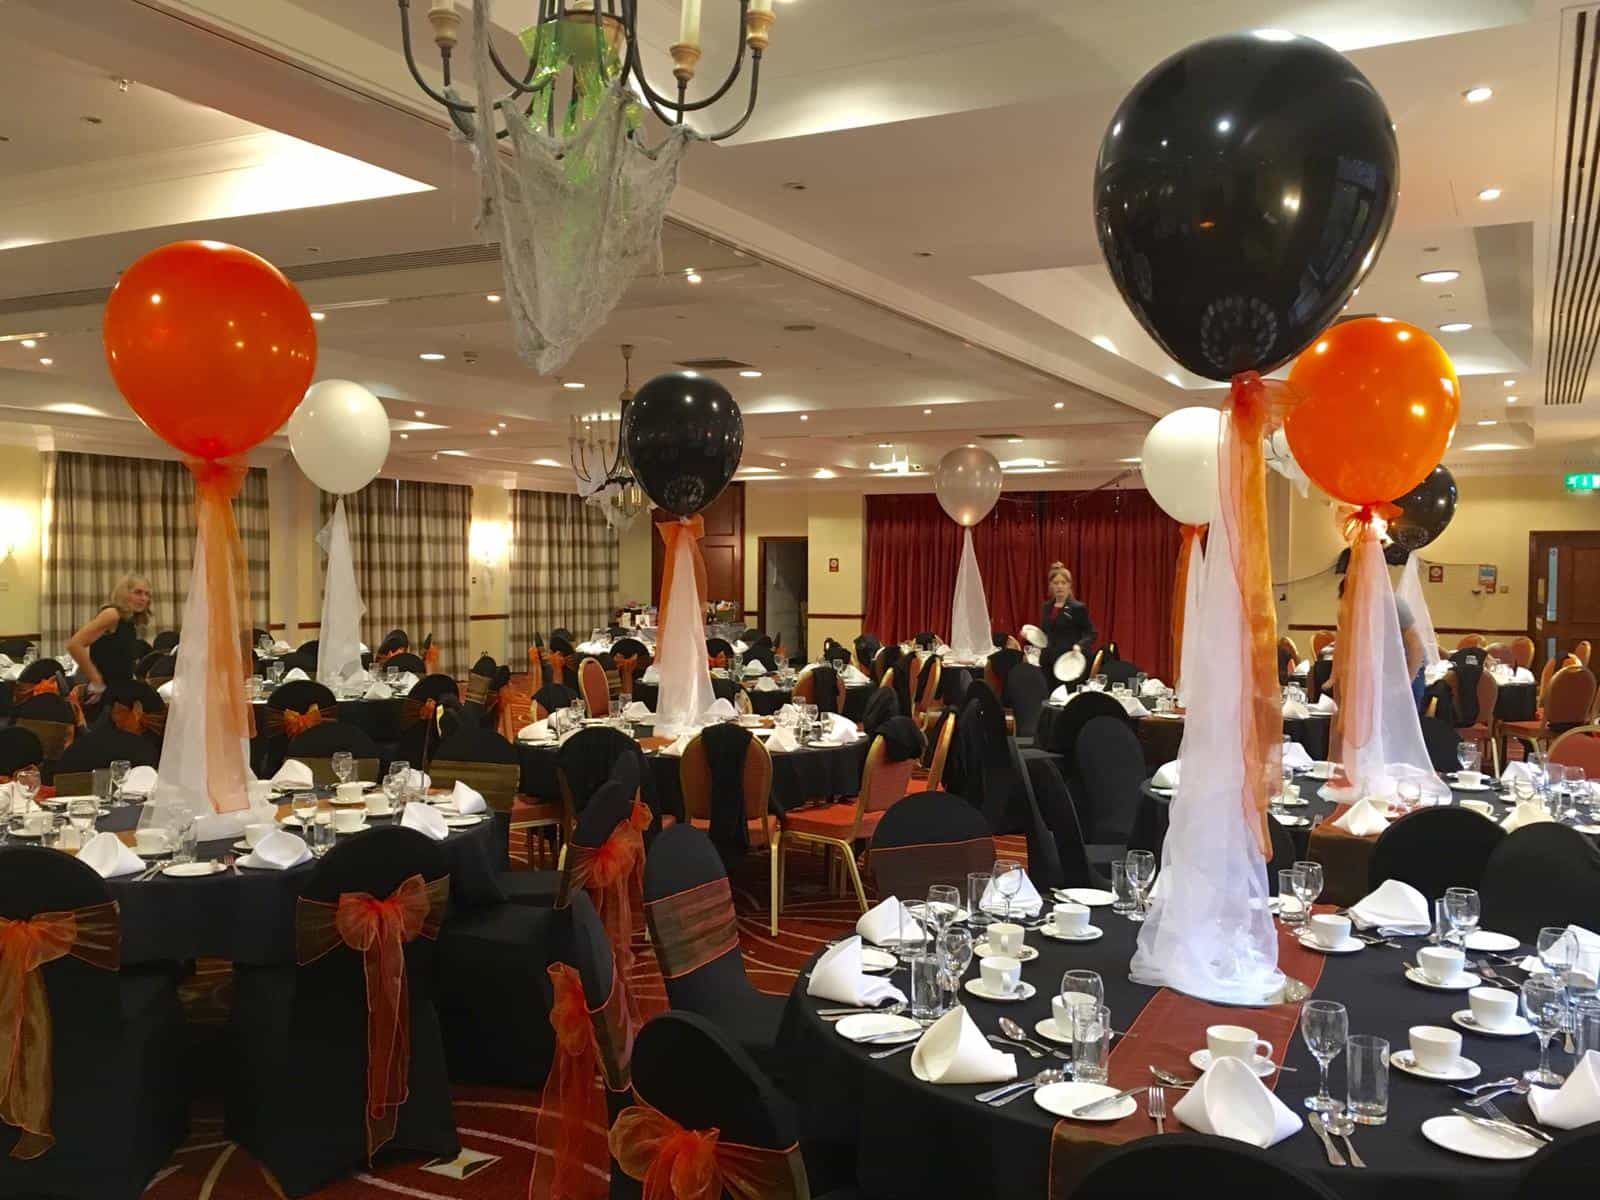 Haloween venue dressing event in Liverpool with black and orange decor all over the room